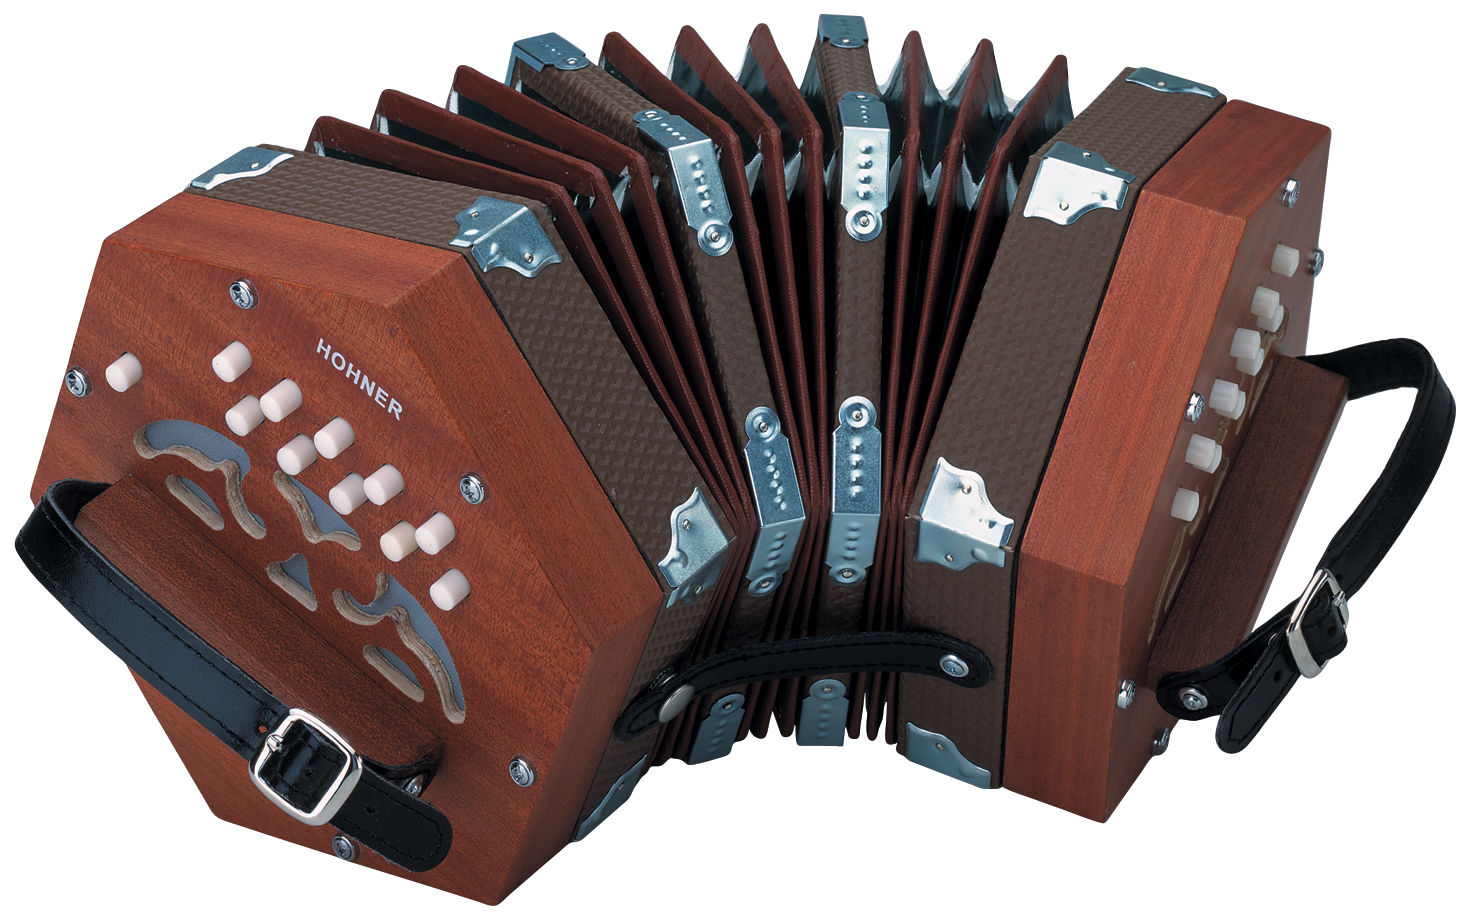 NEW Hohner D40 Anglo Concertina CG 20